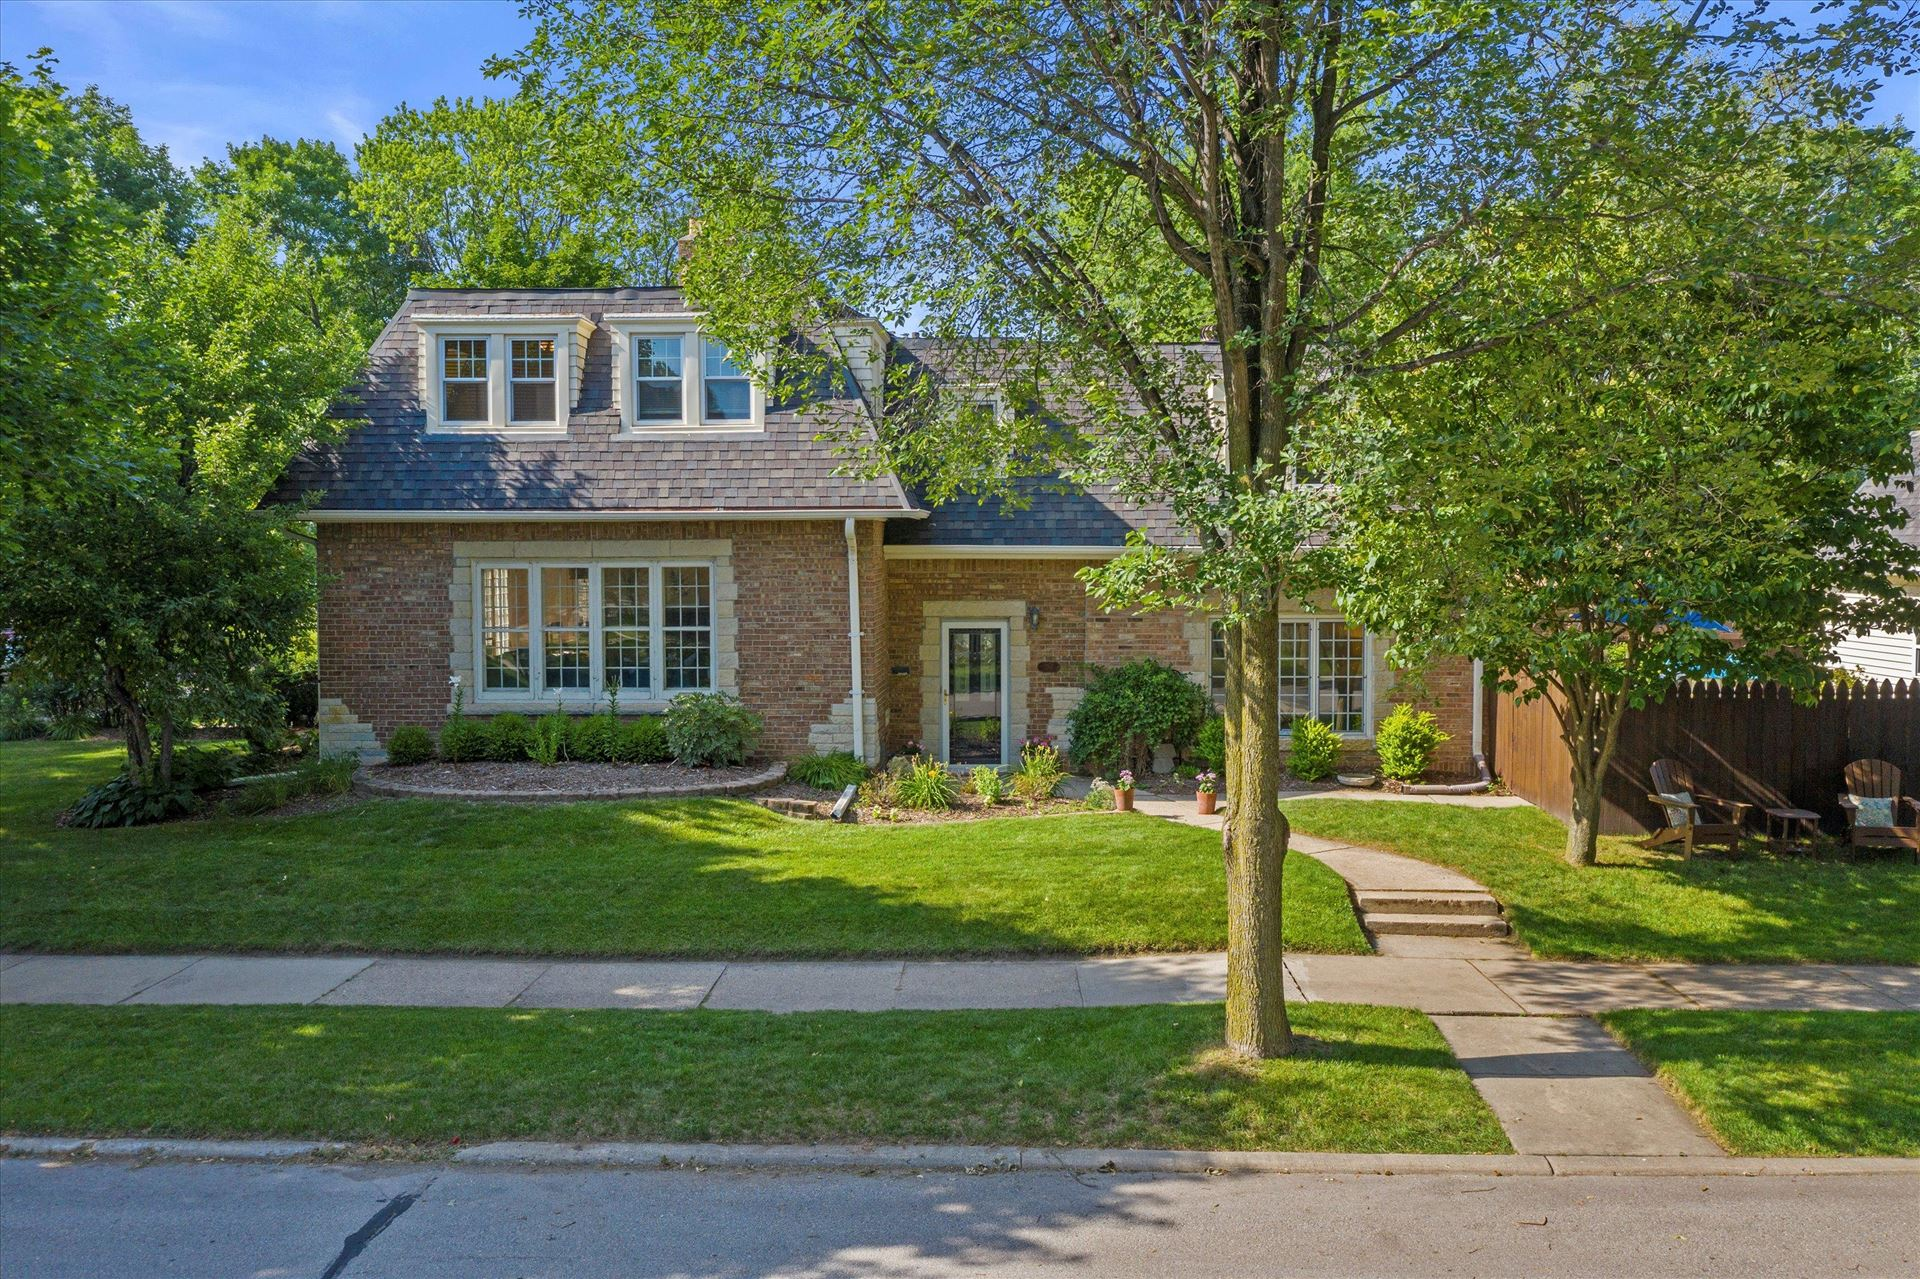 110 E Belle Ave, Whitefish Bay, WI 53217 - MLS#: 1750882